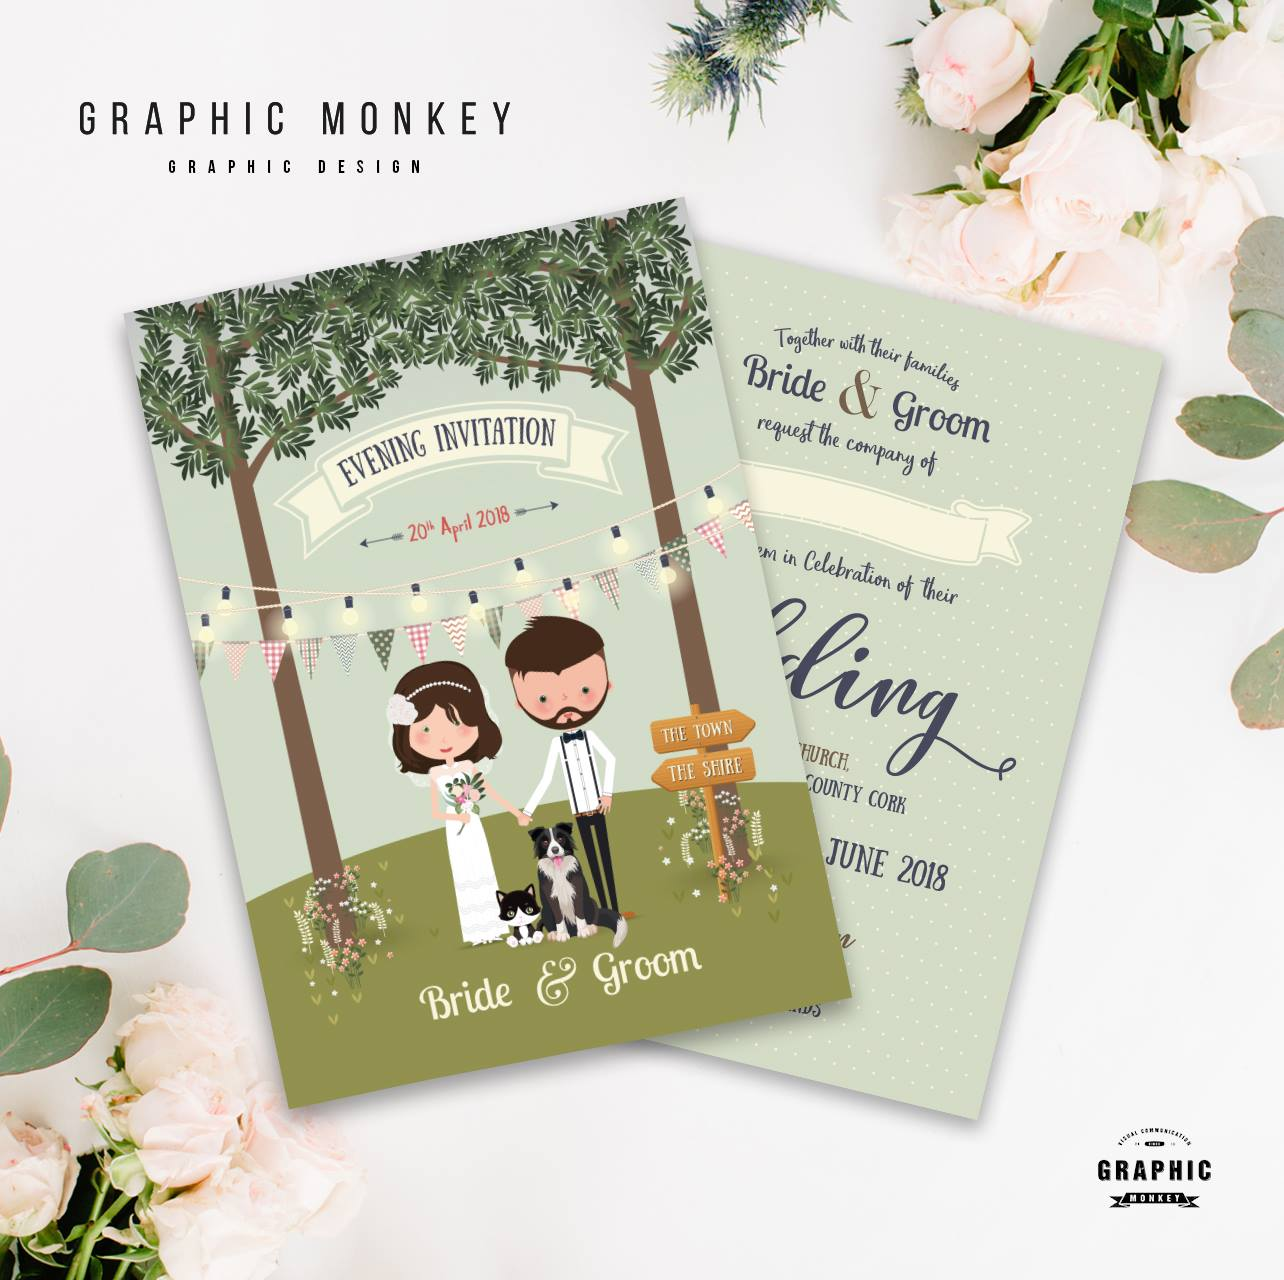 Invitation Ideas For Wedding: 18 Beautifully Illustrated Wedding Invitations